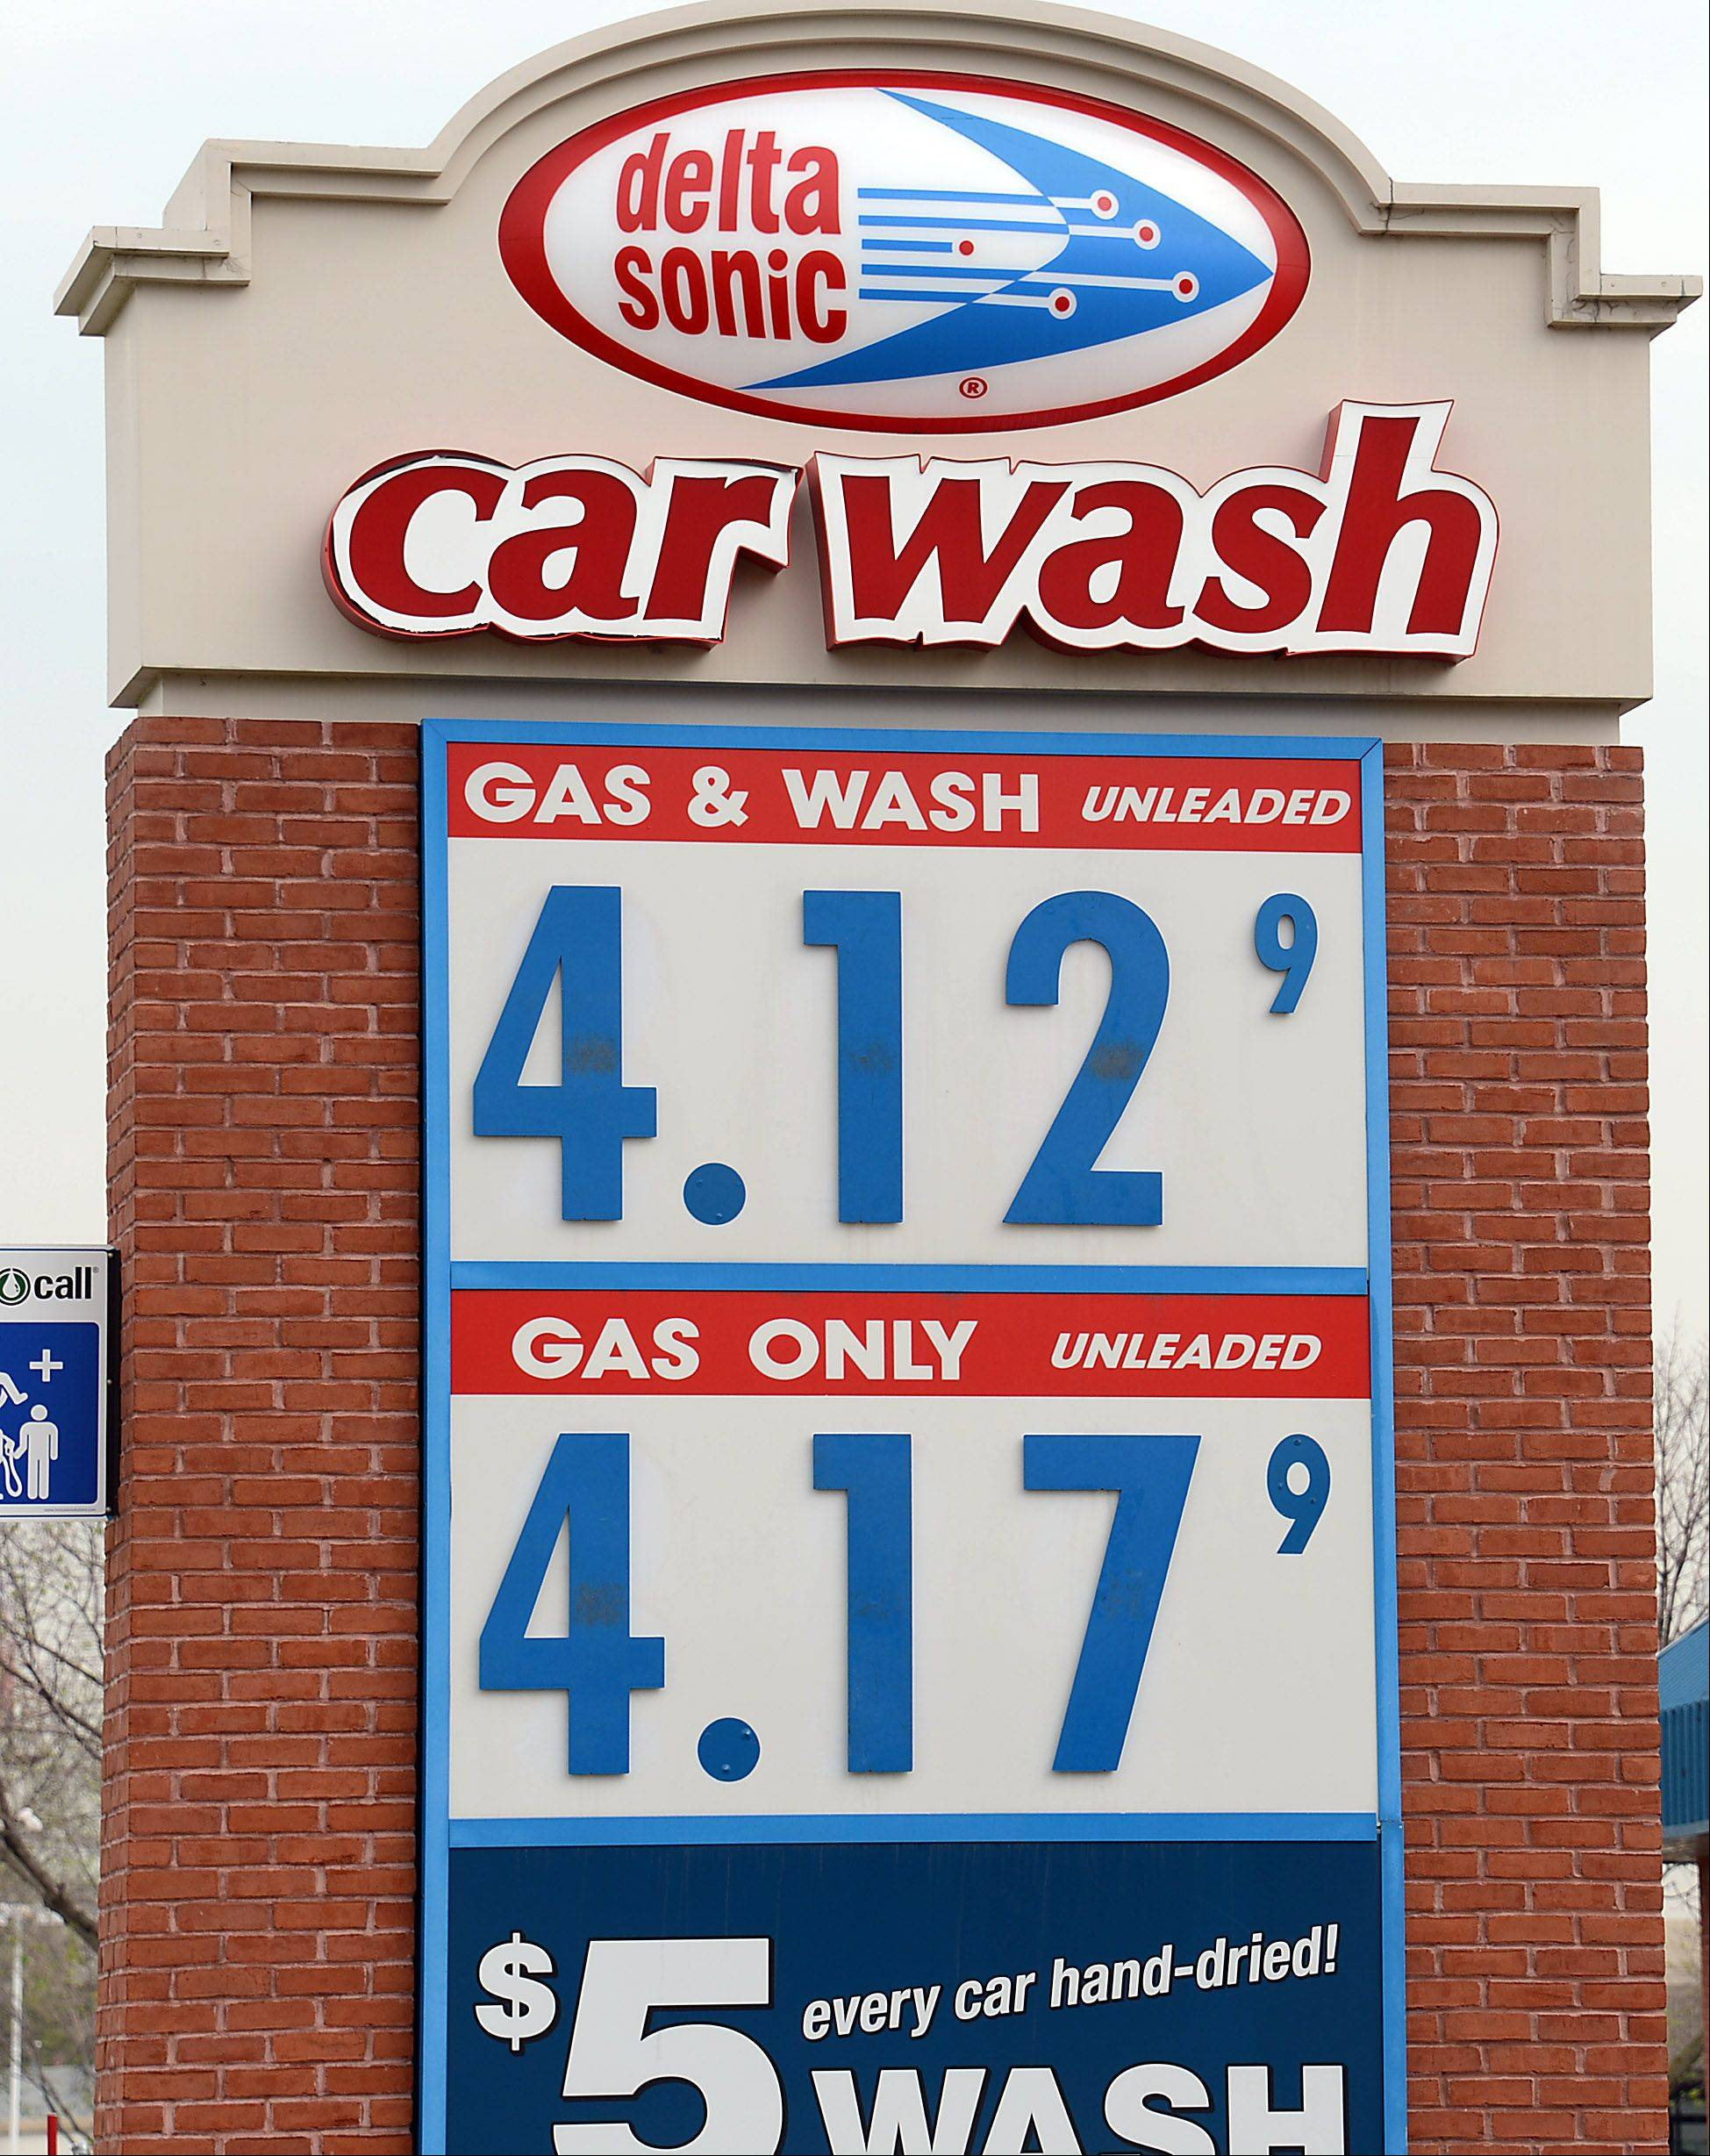 A gallon of regular unleaded was $4.25 at this Mobil station in Buffalo Grove Thursday, far above national averages.